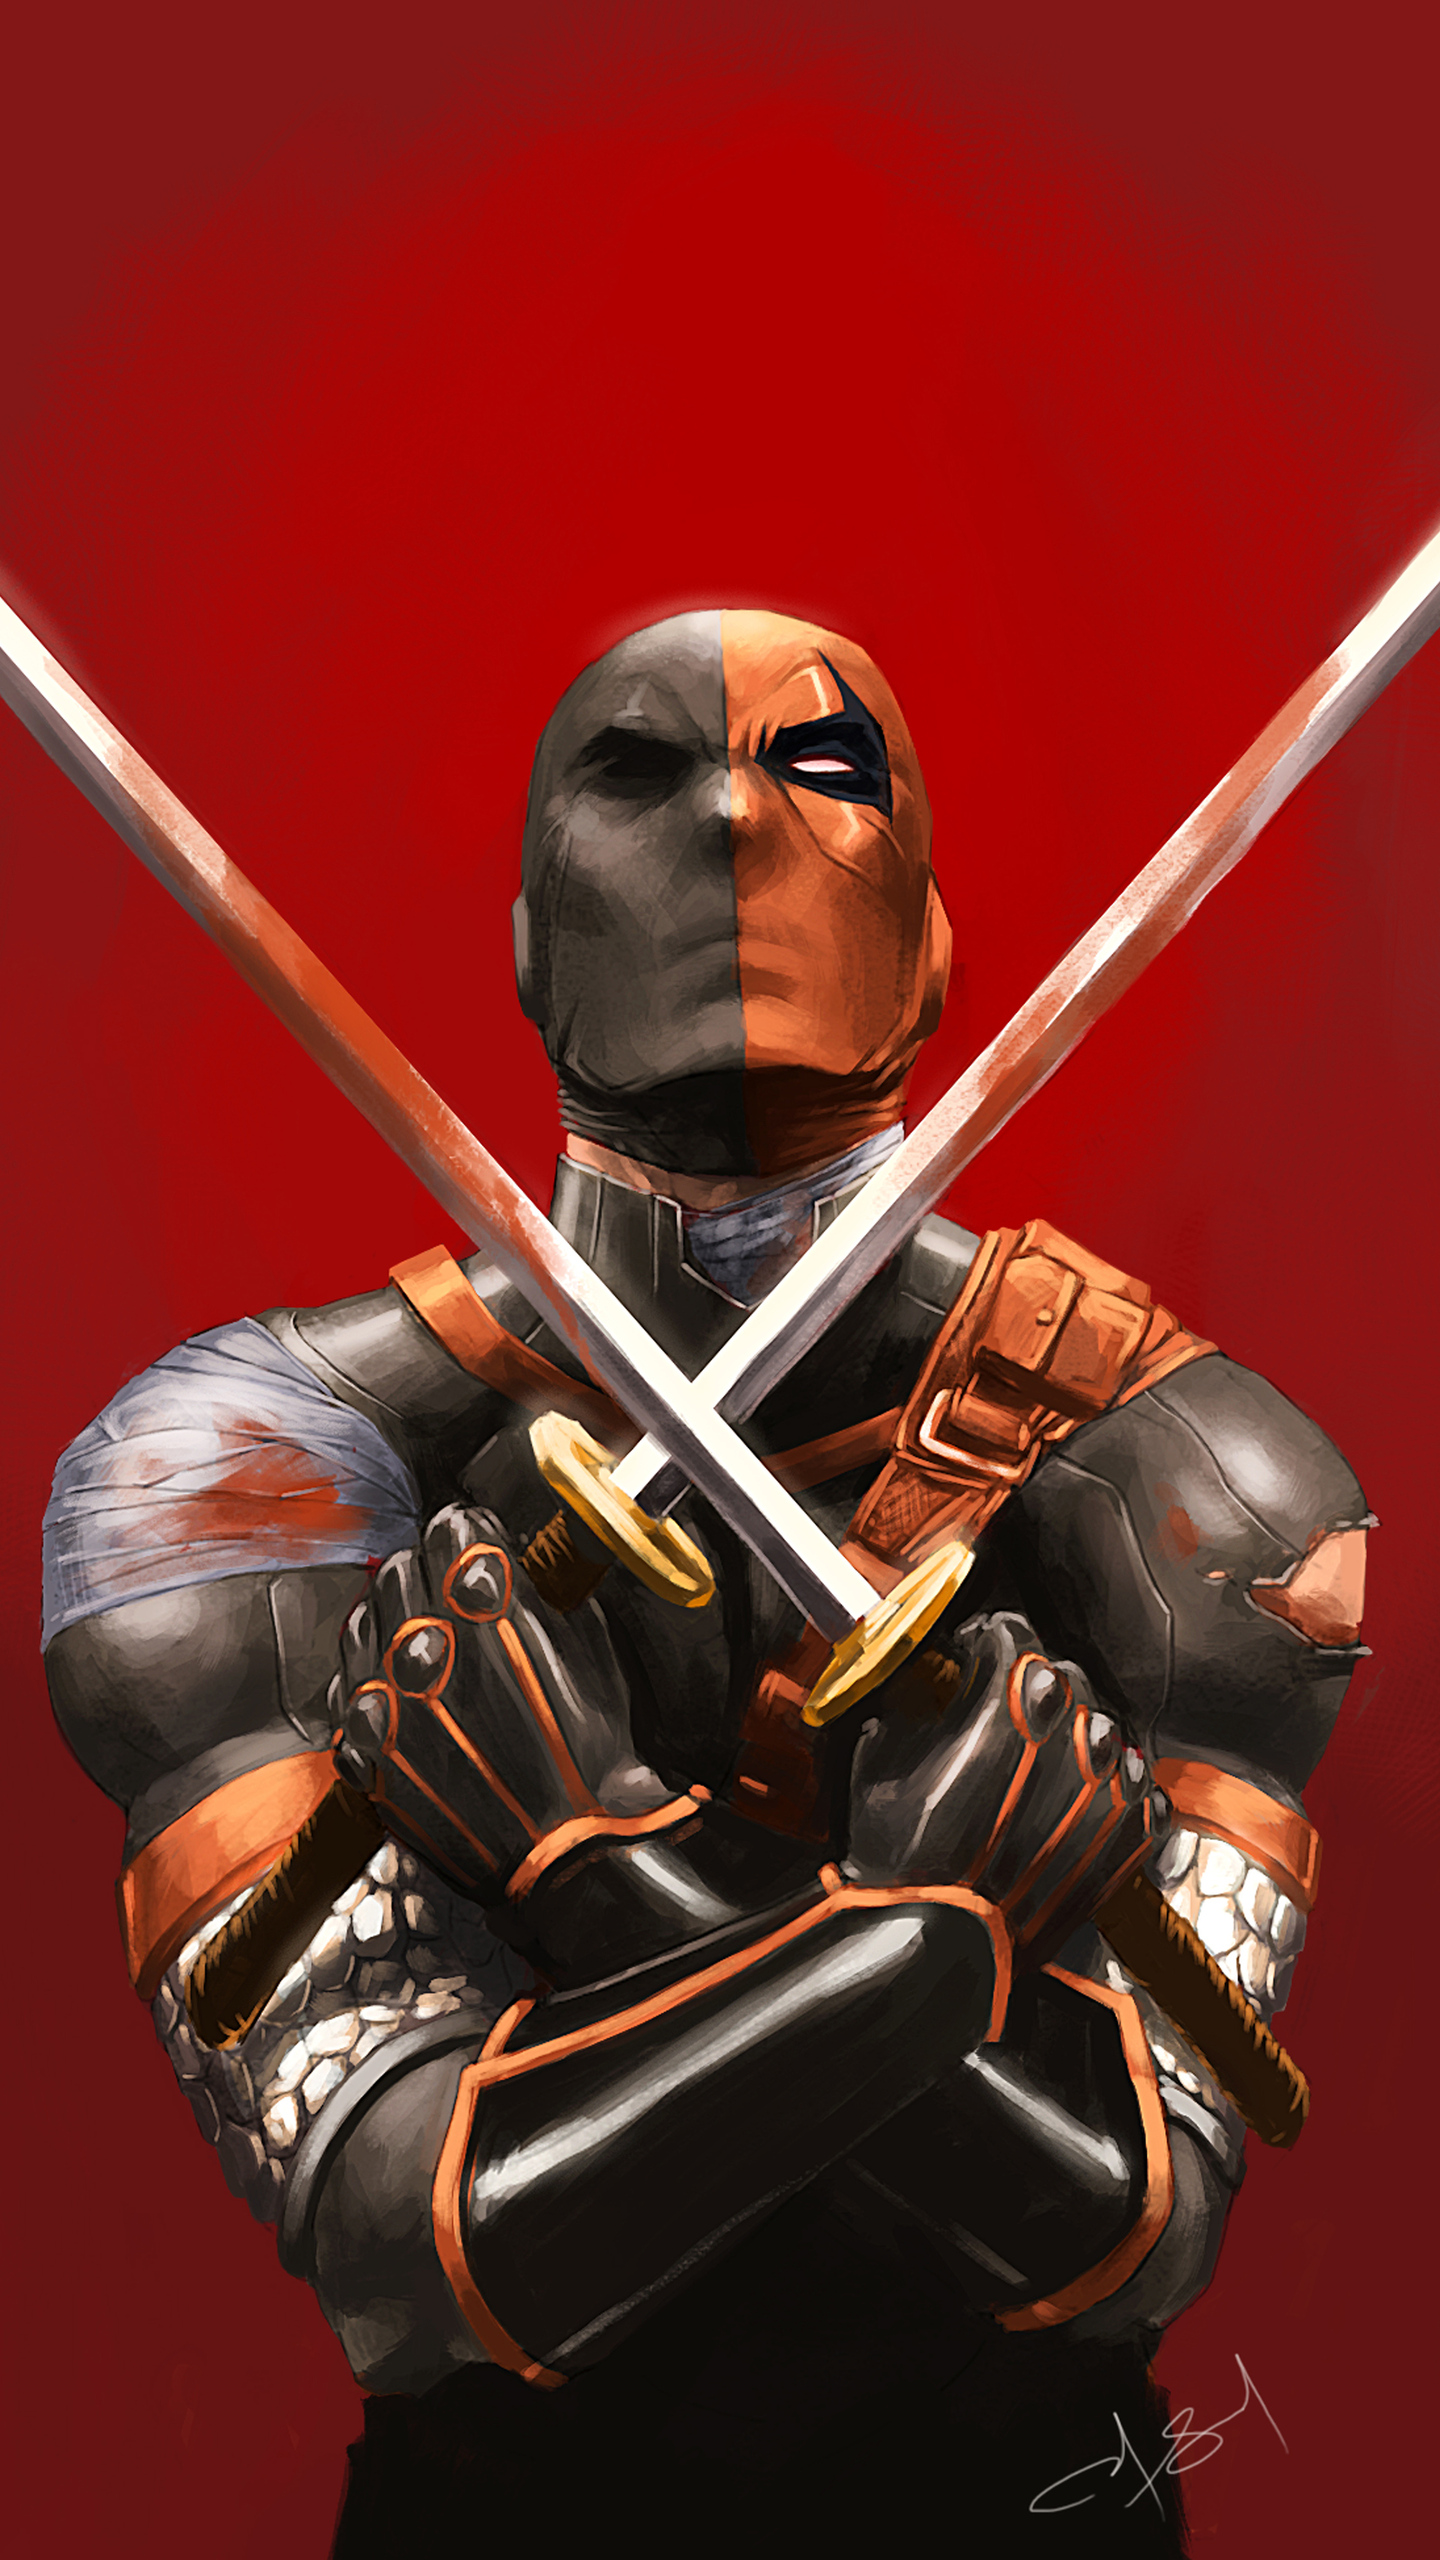 deathstroke-with-two-swords-0p.jpg